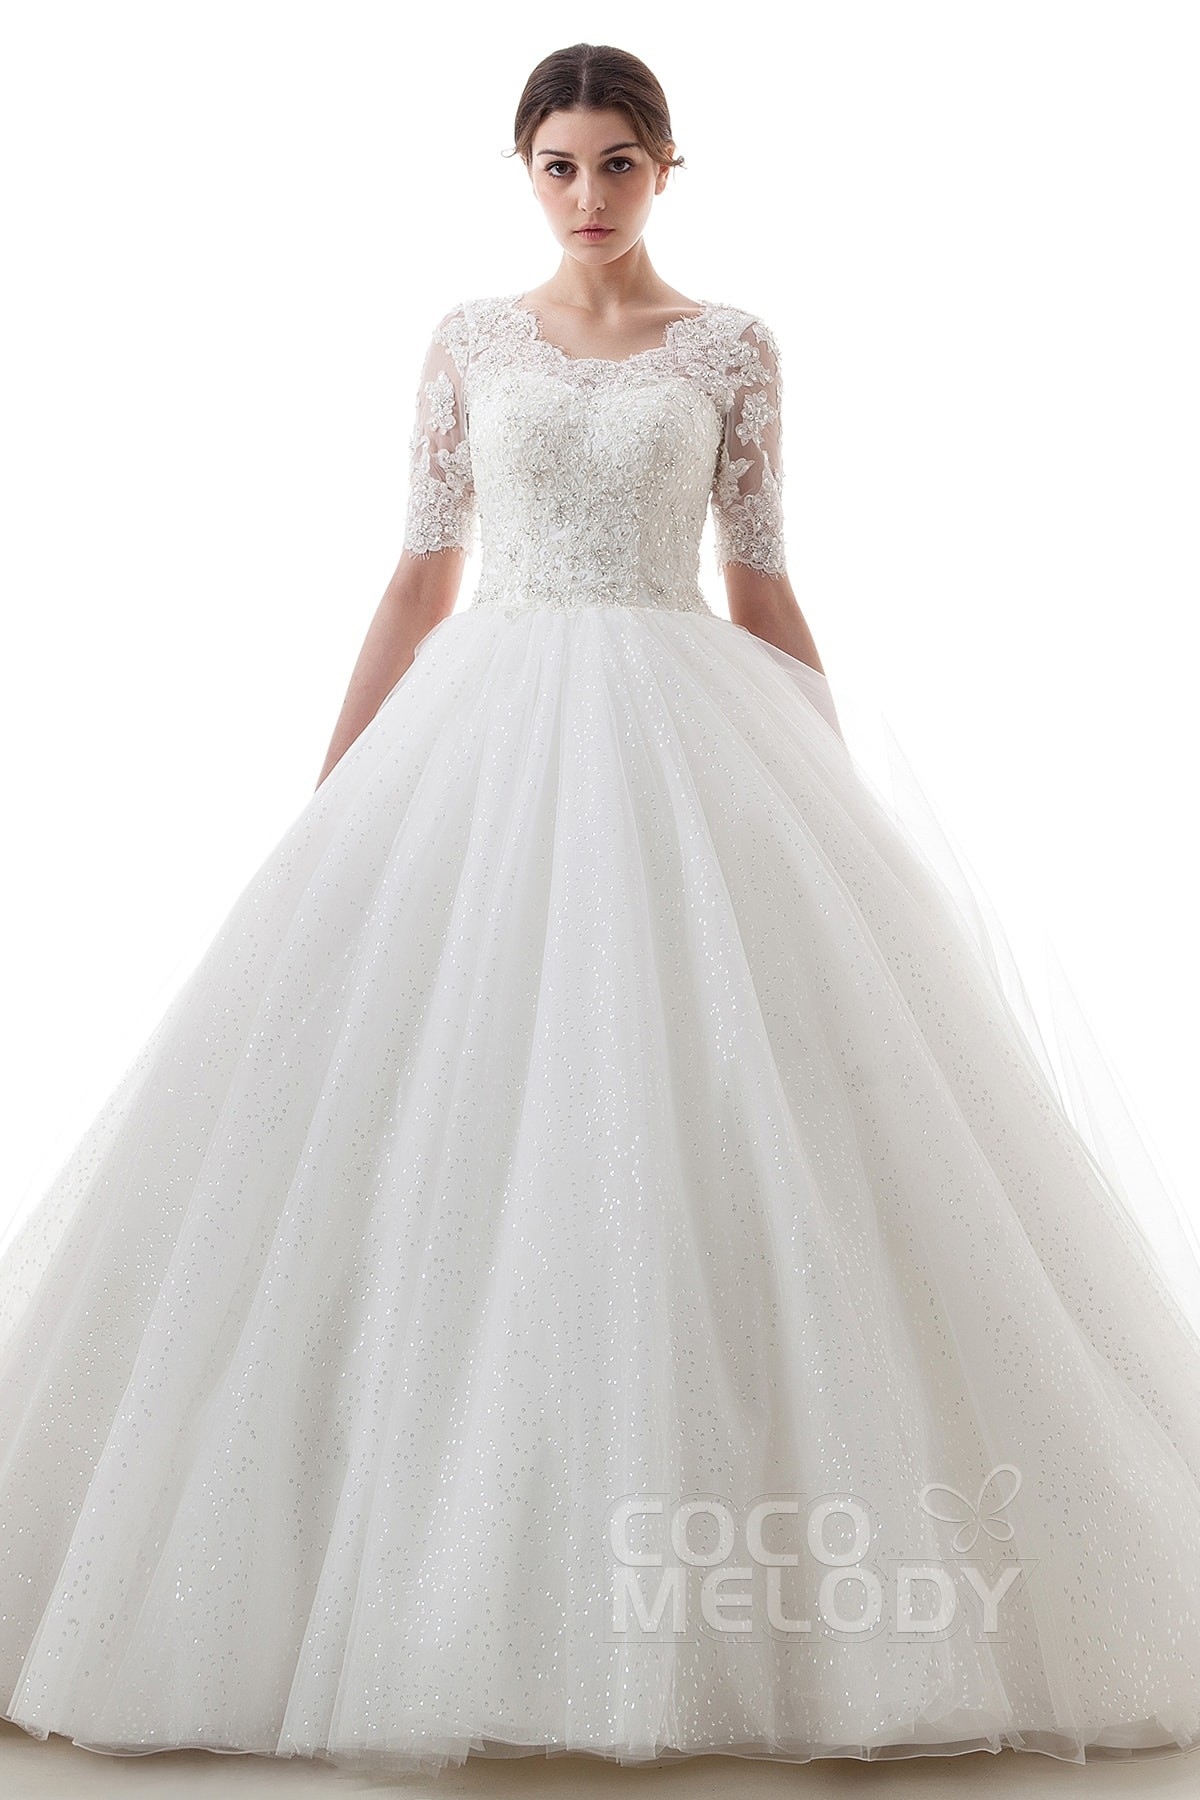 A-Line Train Tulle Half Sleeve Wedding Dress B14TB0056 | Cocomelody